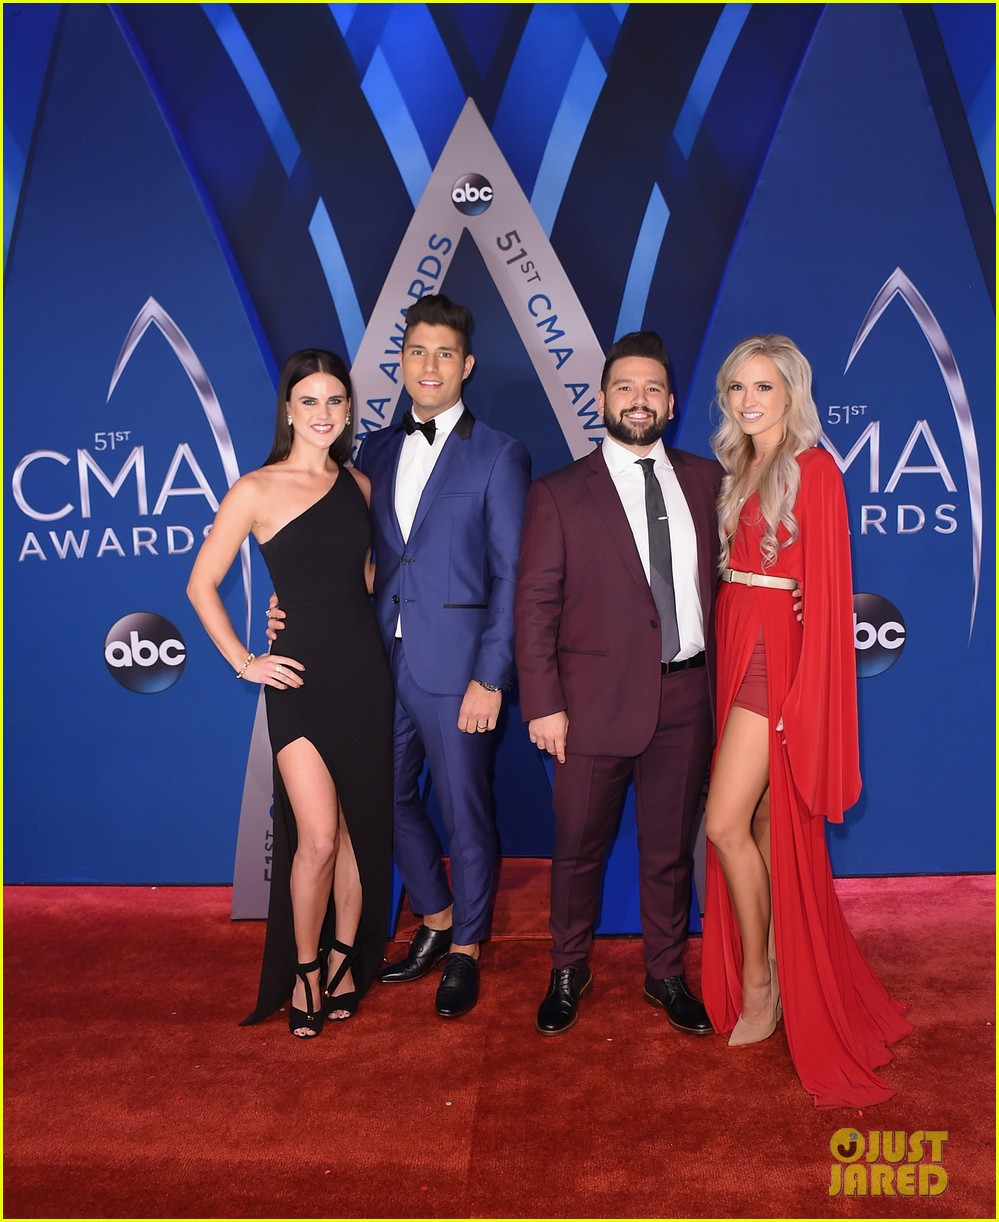 lauren alaina and dan and shay hit cma awards 2017 red carpet before performance 02